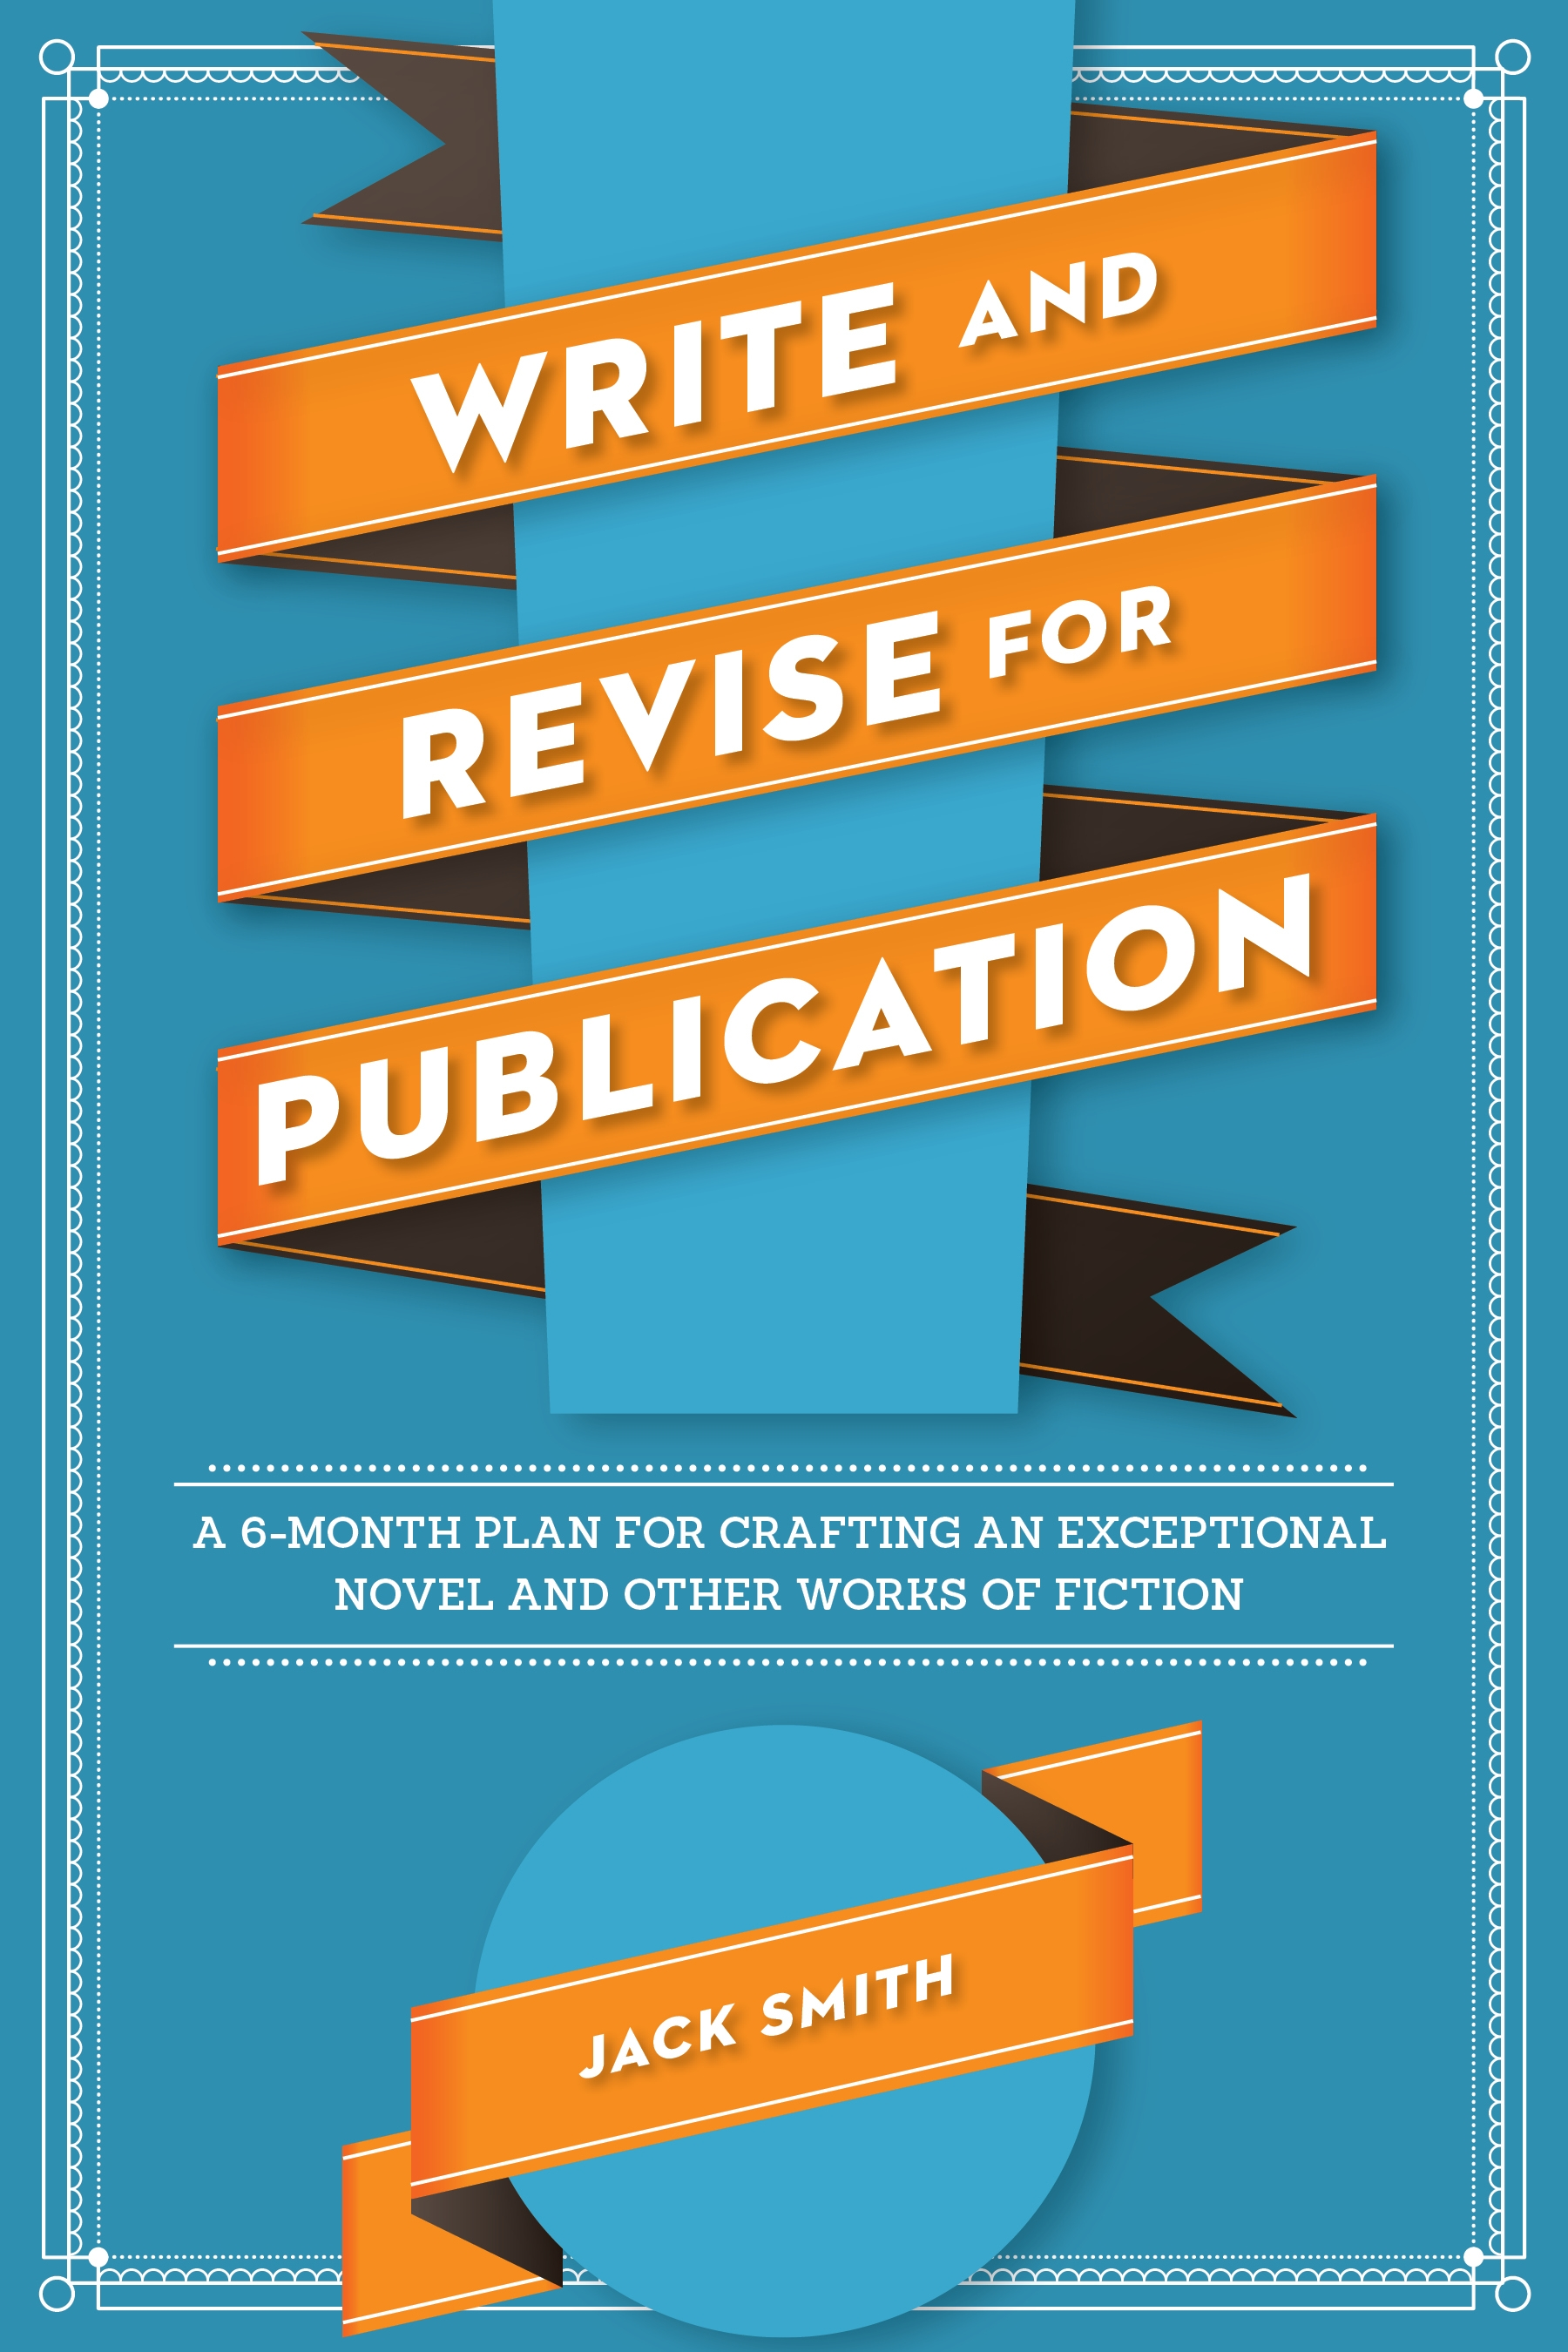 Writing for Biomedical Publication